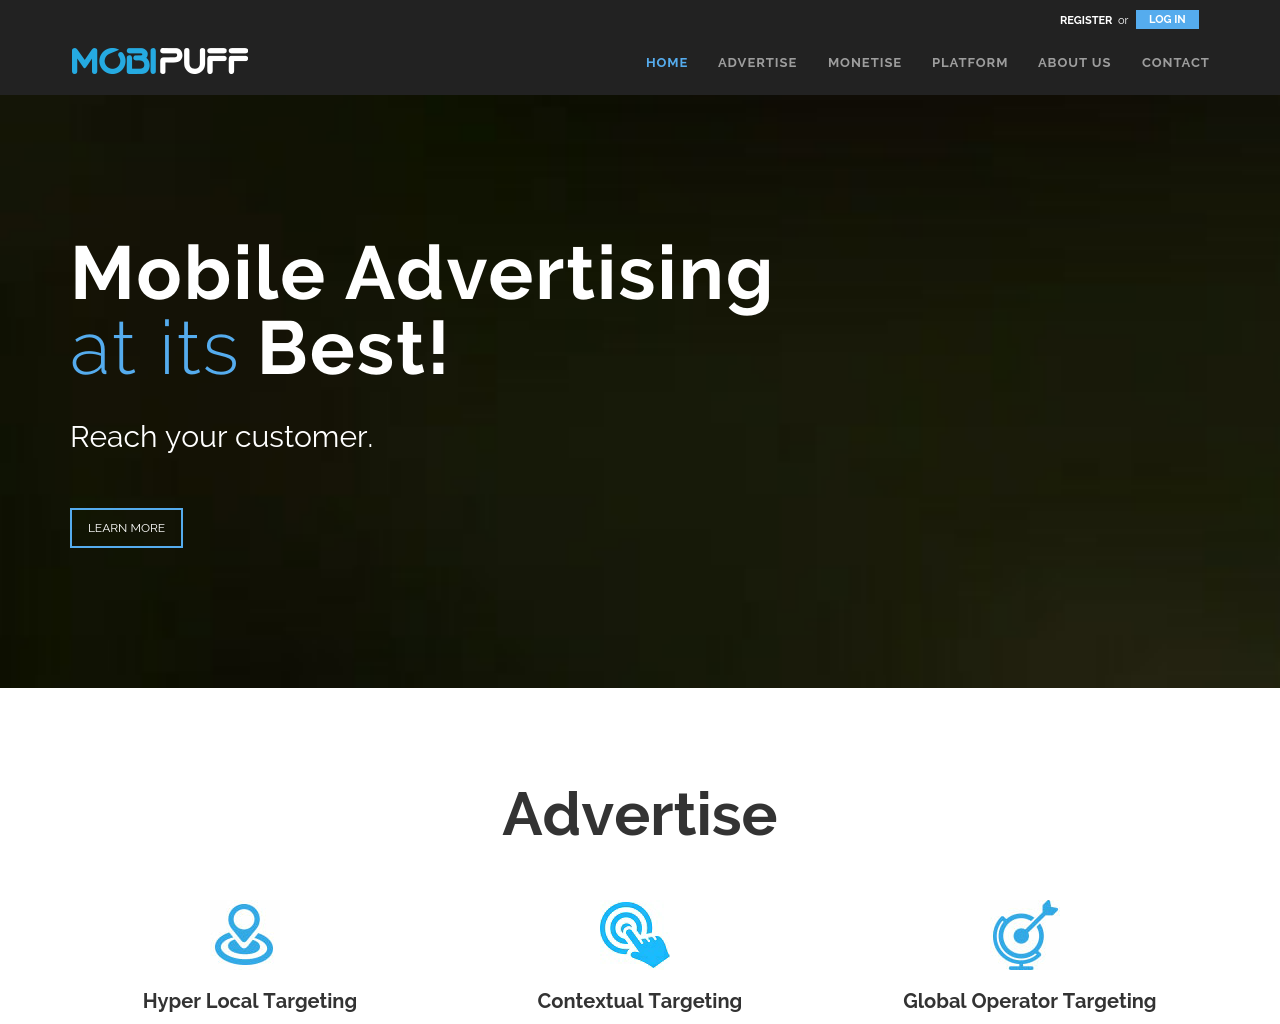 Mobipuff-Advertising-Reviews-Pricing